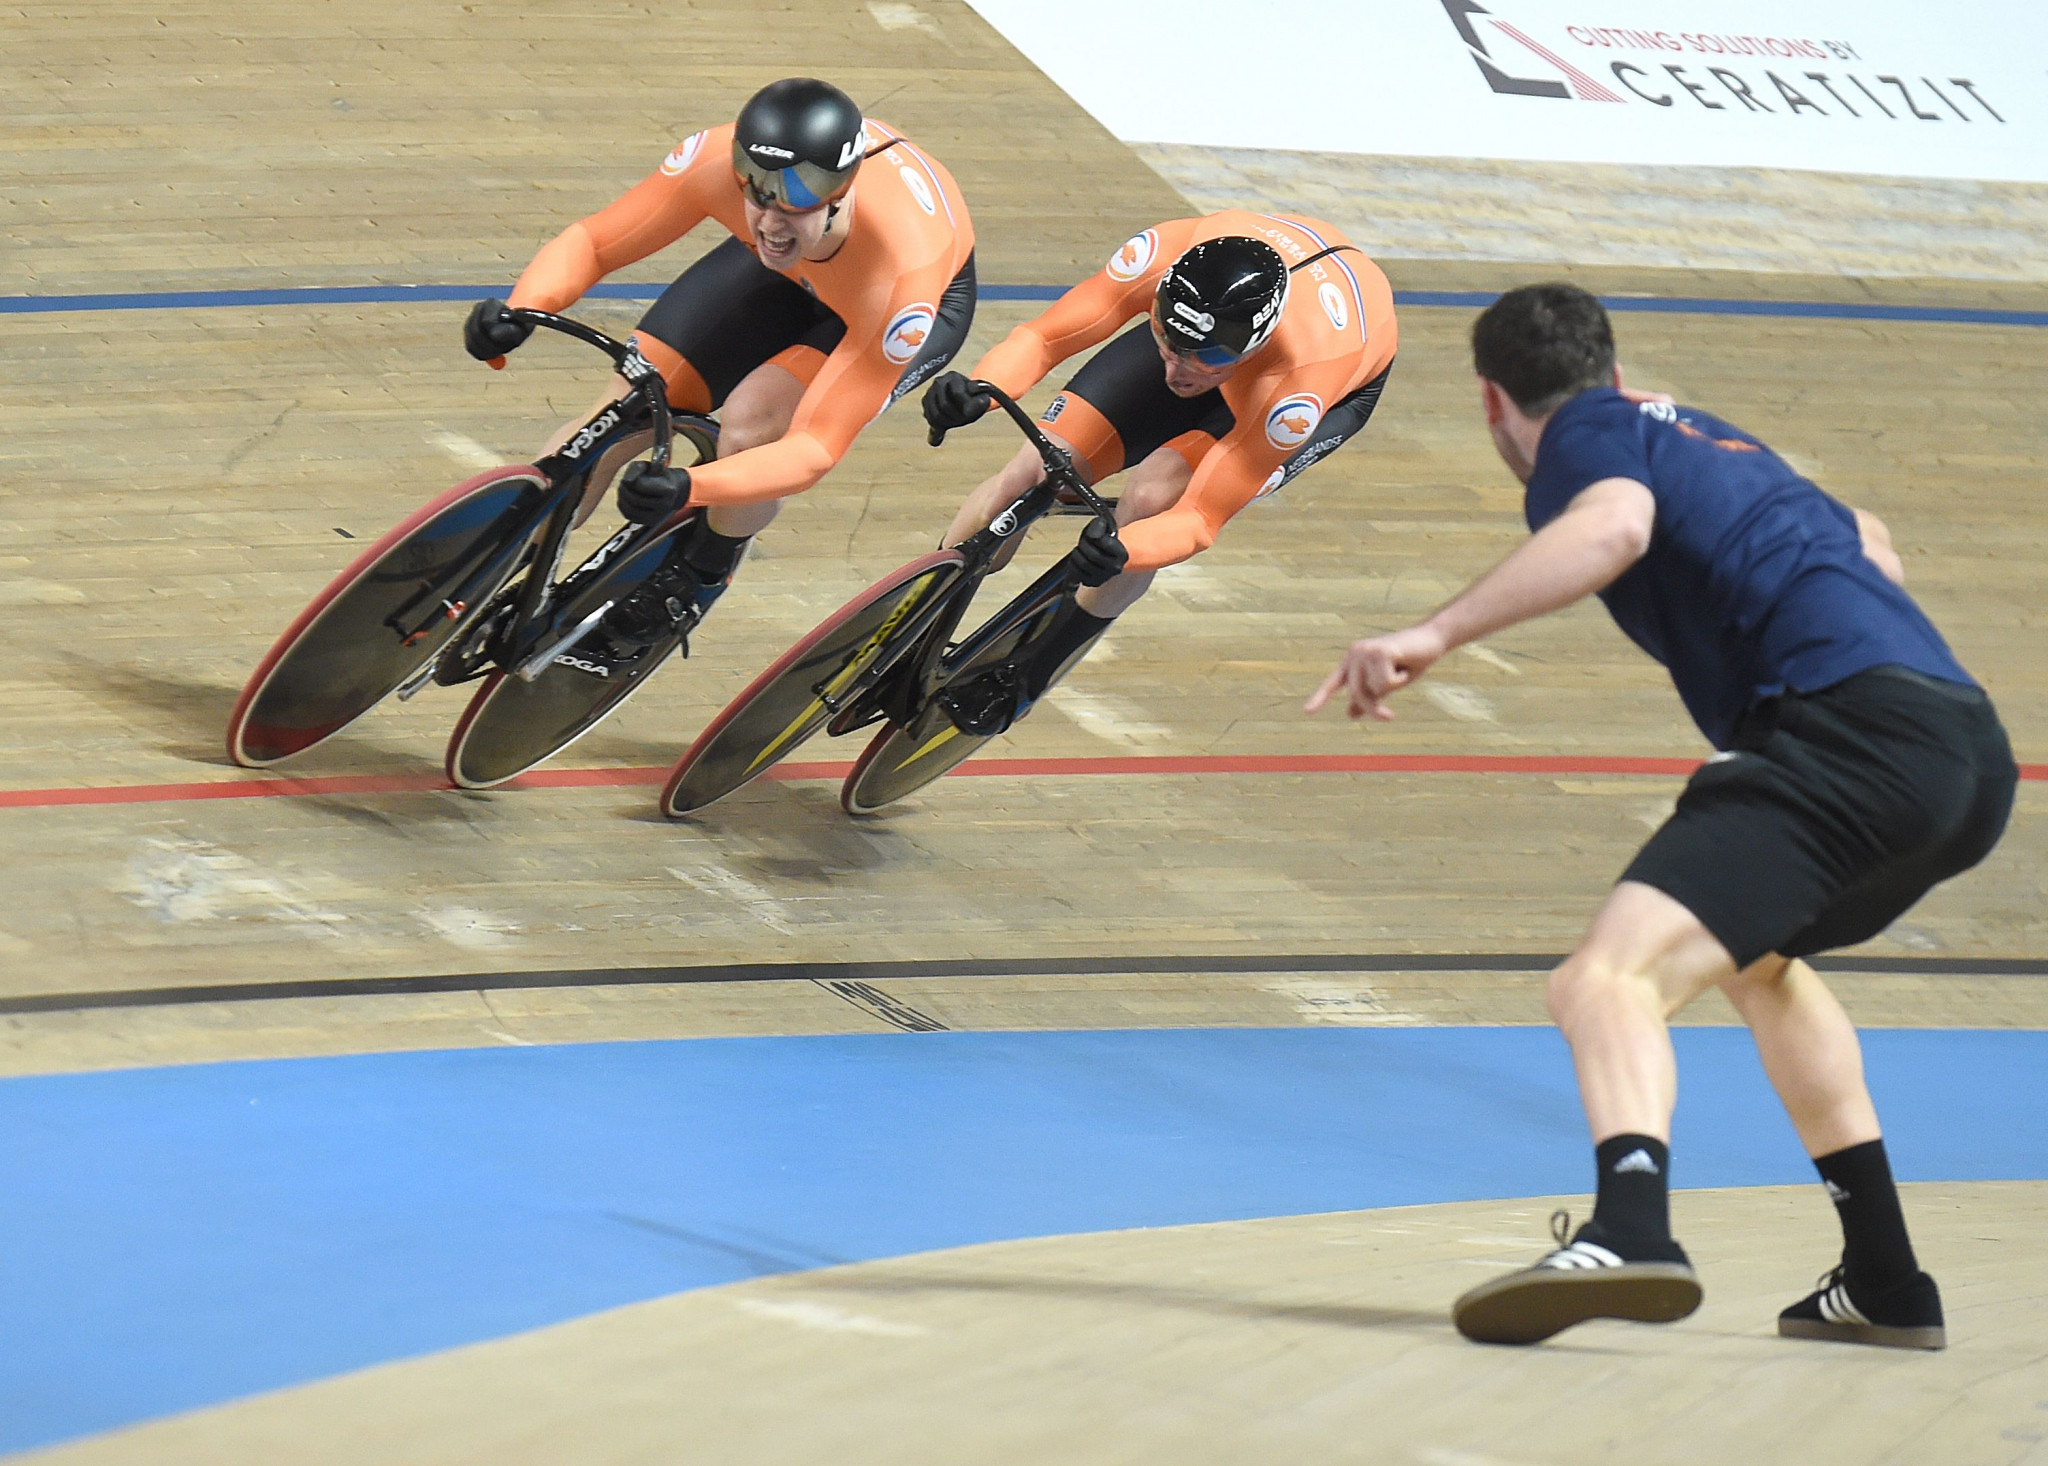 Dutch delight in men's team sprint as UCI World Track Cycling Championships begins